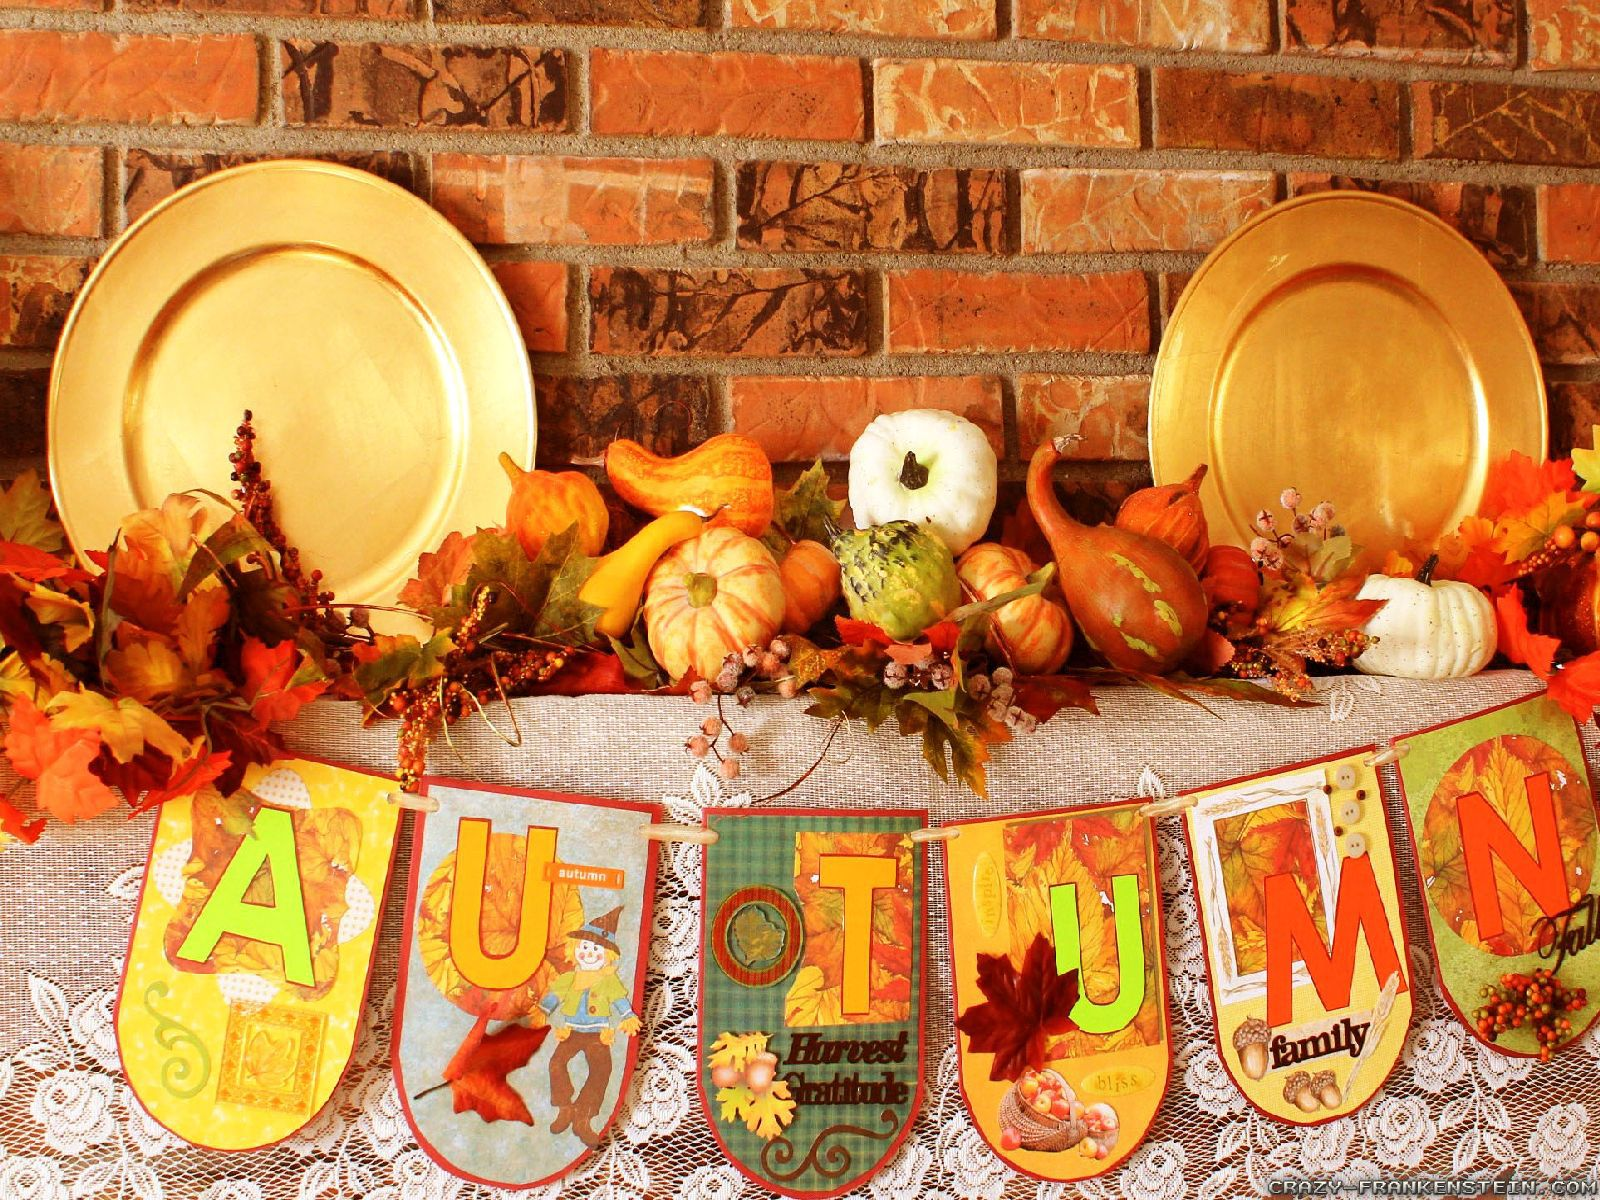 Fall Harvest Wallpaper 1024x768 Autumn Decorations Wallpapers Seasonal Crazy Frankenstein